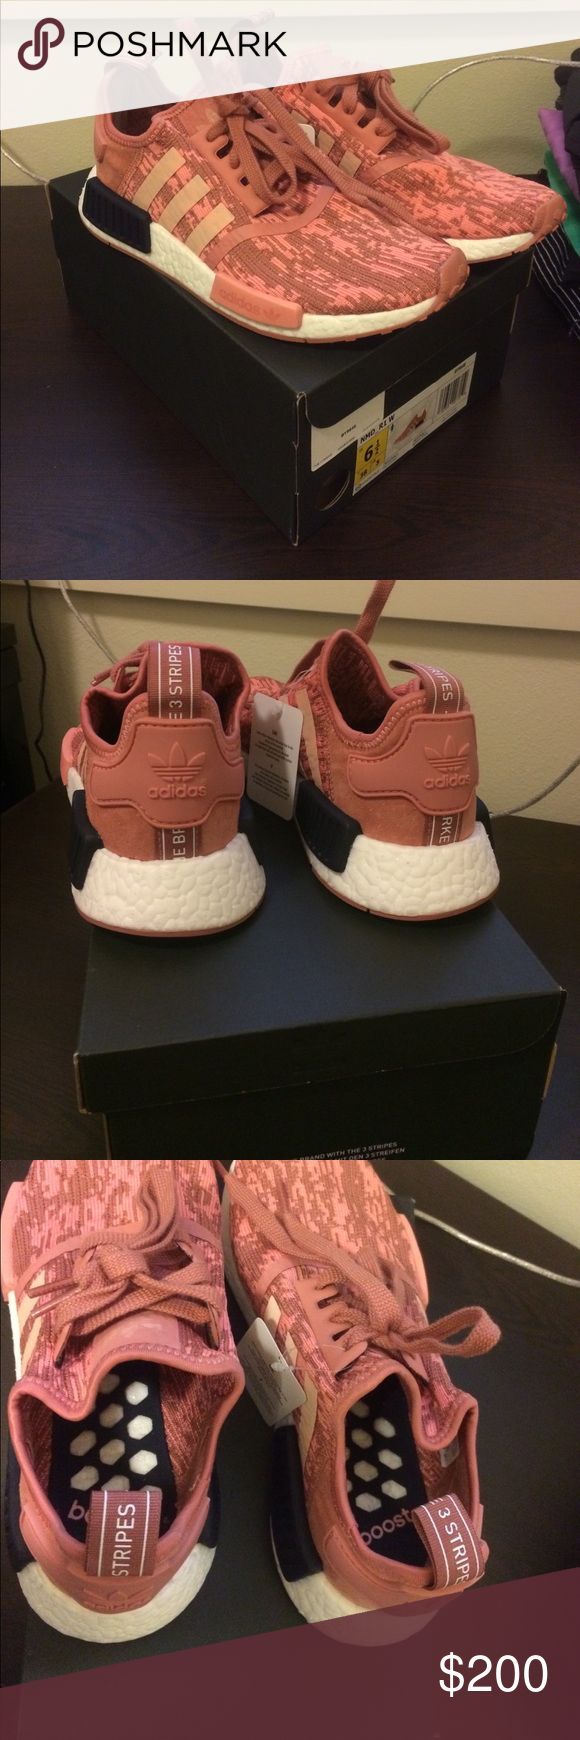 Adidas NMD R1 NWT (raw pink/trace pink/legend ink) Rare, salmon colored. Fits like a 7 (if you're familiar with adidas sizing you know they run large) this is a 6.5 but that's what I wear normally so I suggest if you wear a 7/7.5 normally these would fit you!! Beautiful color just too big on me. 100% authentic, have the Champs receipt too. Medium width Adidas Shoes Sneakers